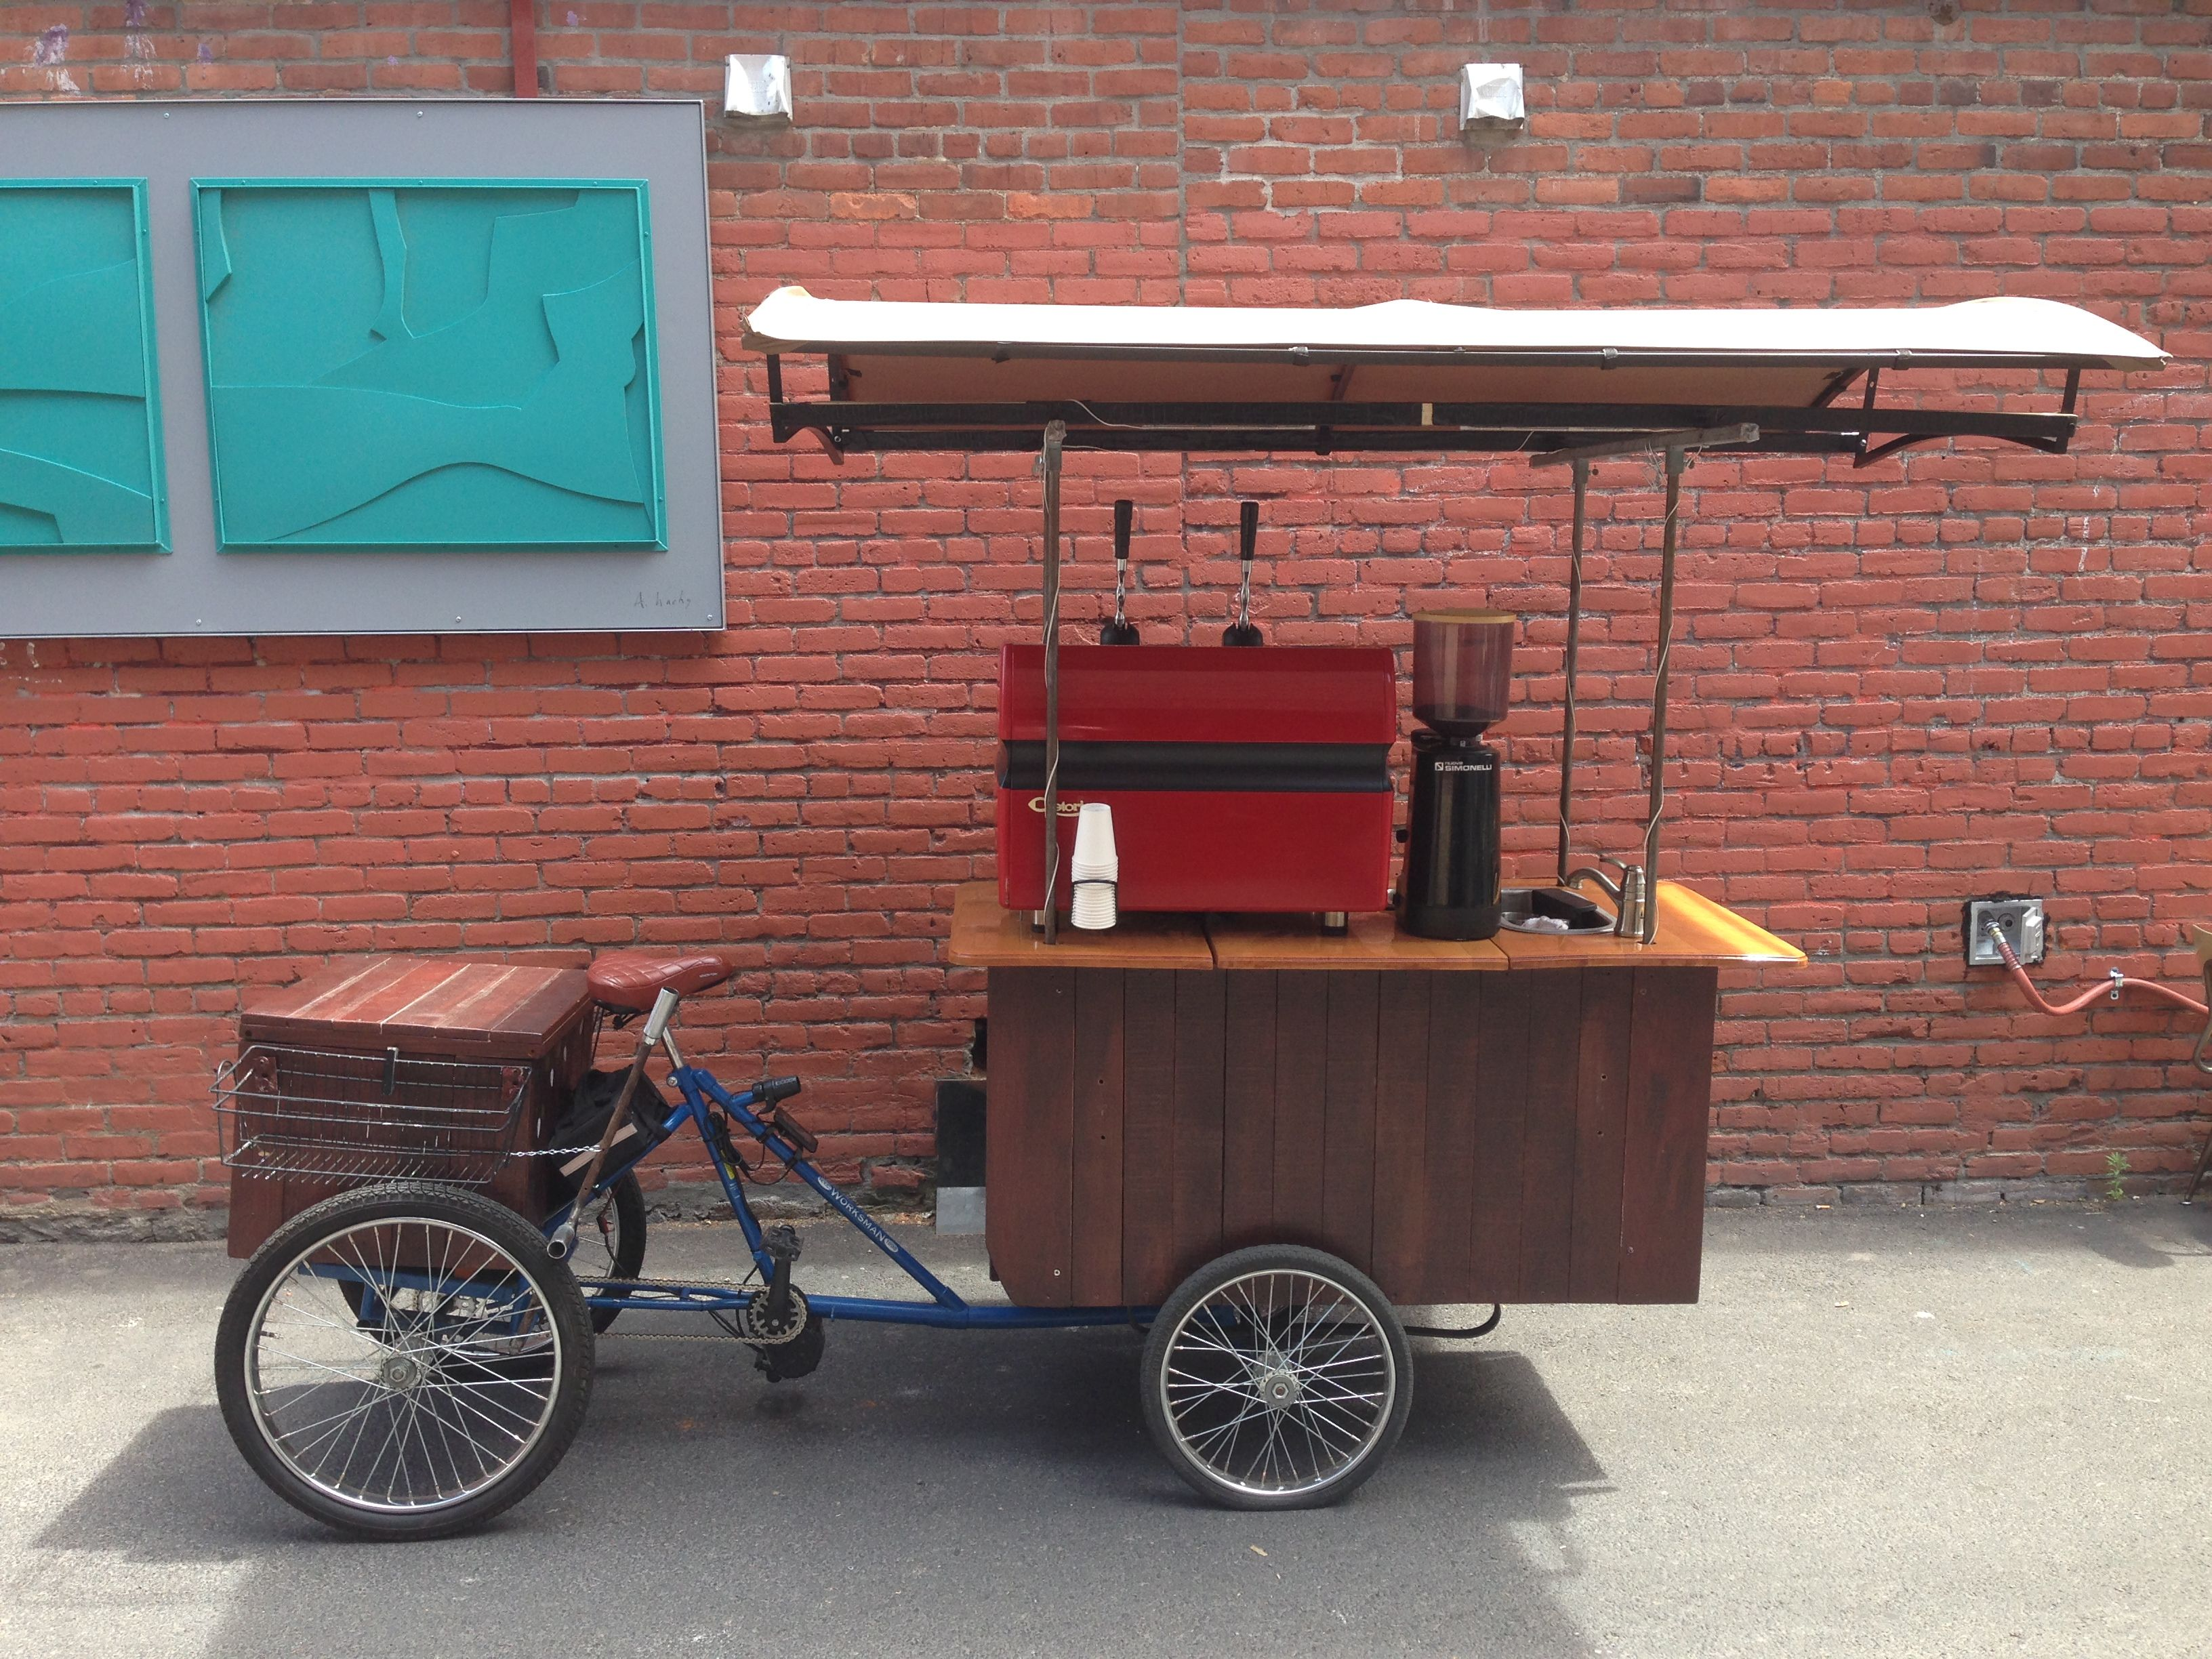 Cucina Vita Bicycle Pizza Cutter Coffee Cart Mobile Espresso Bike For Sale Check Out This Super